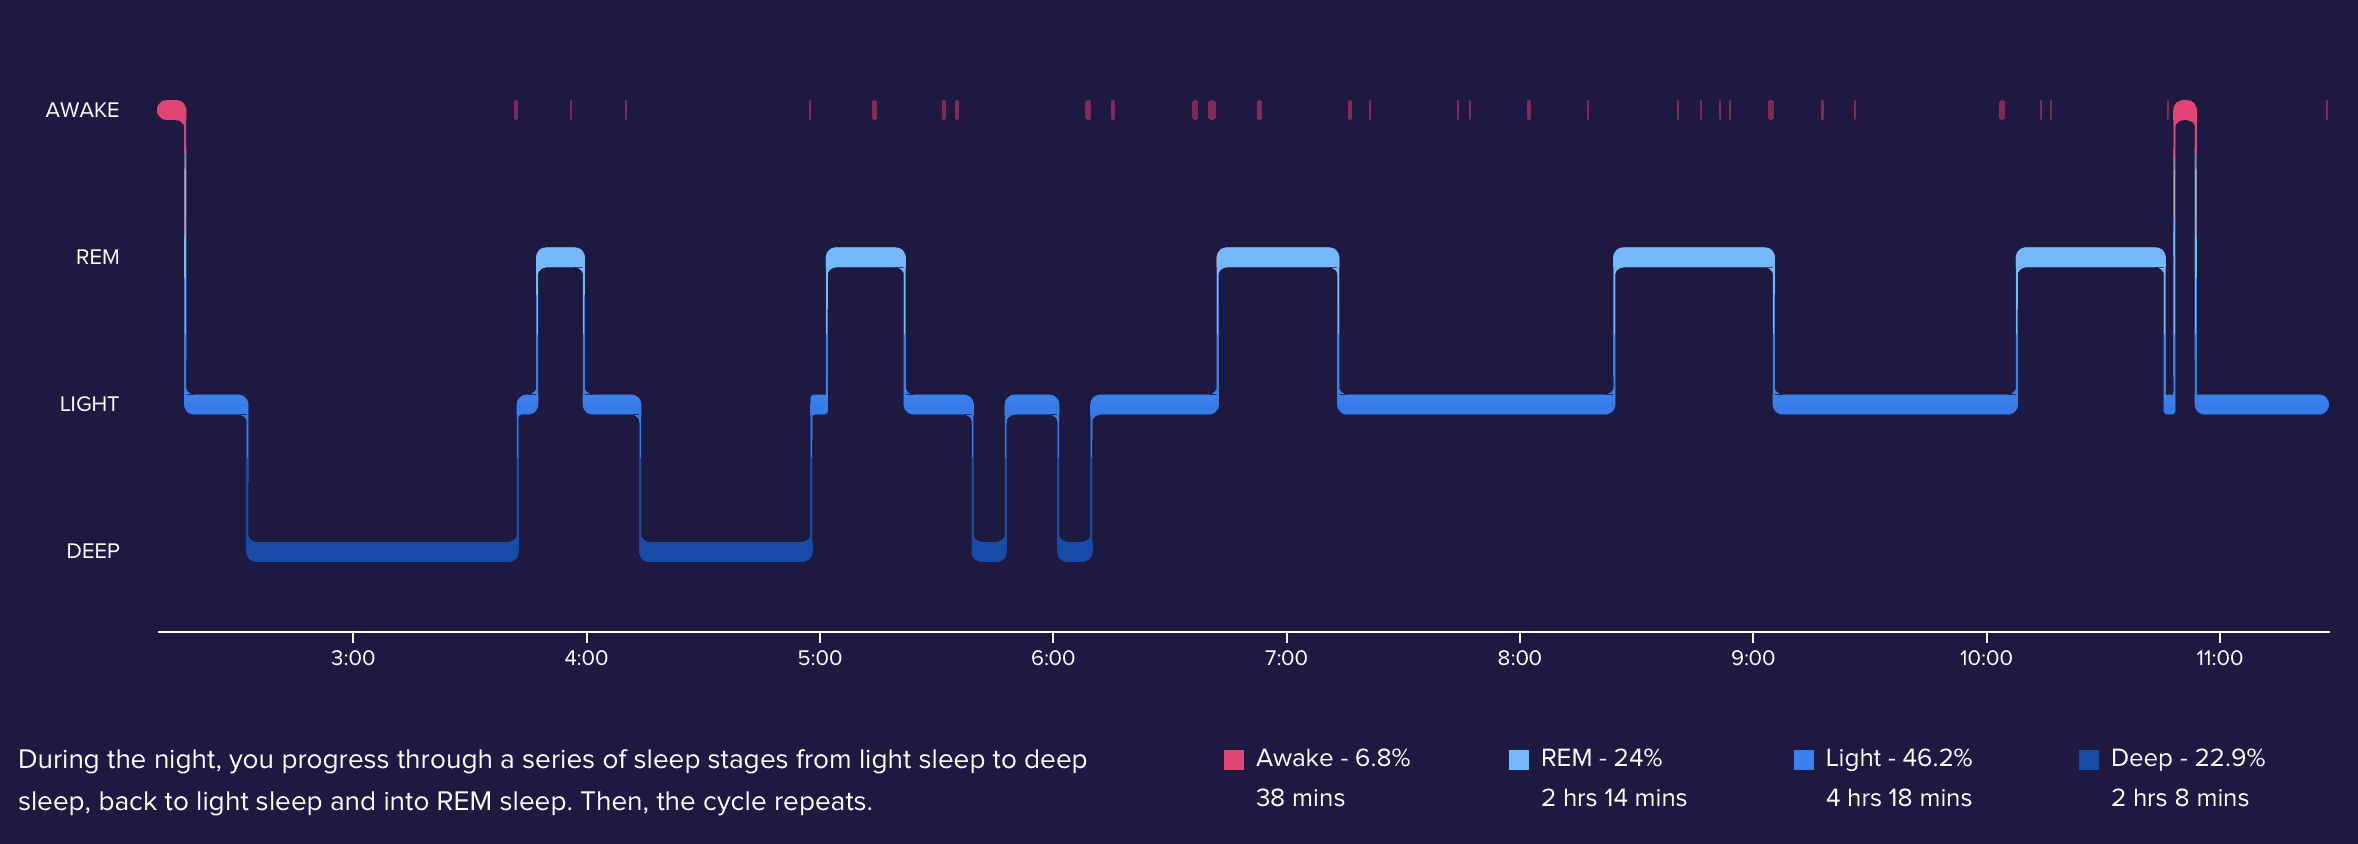 fitbit alta hr sleep tracking